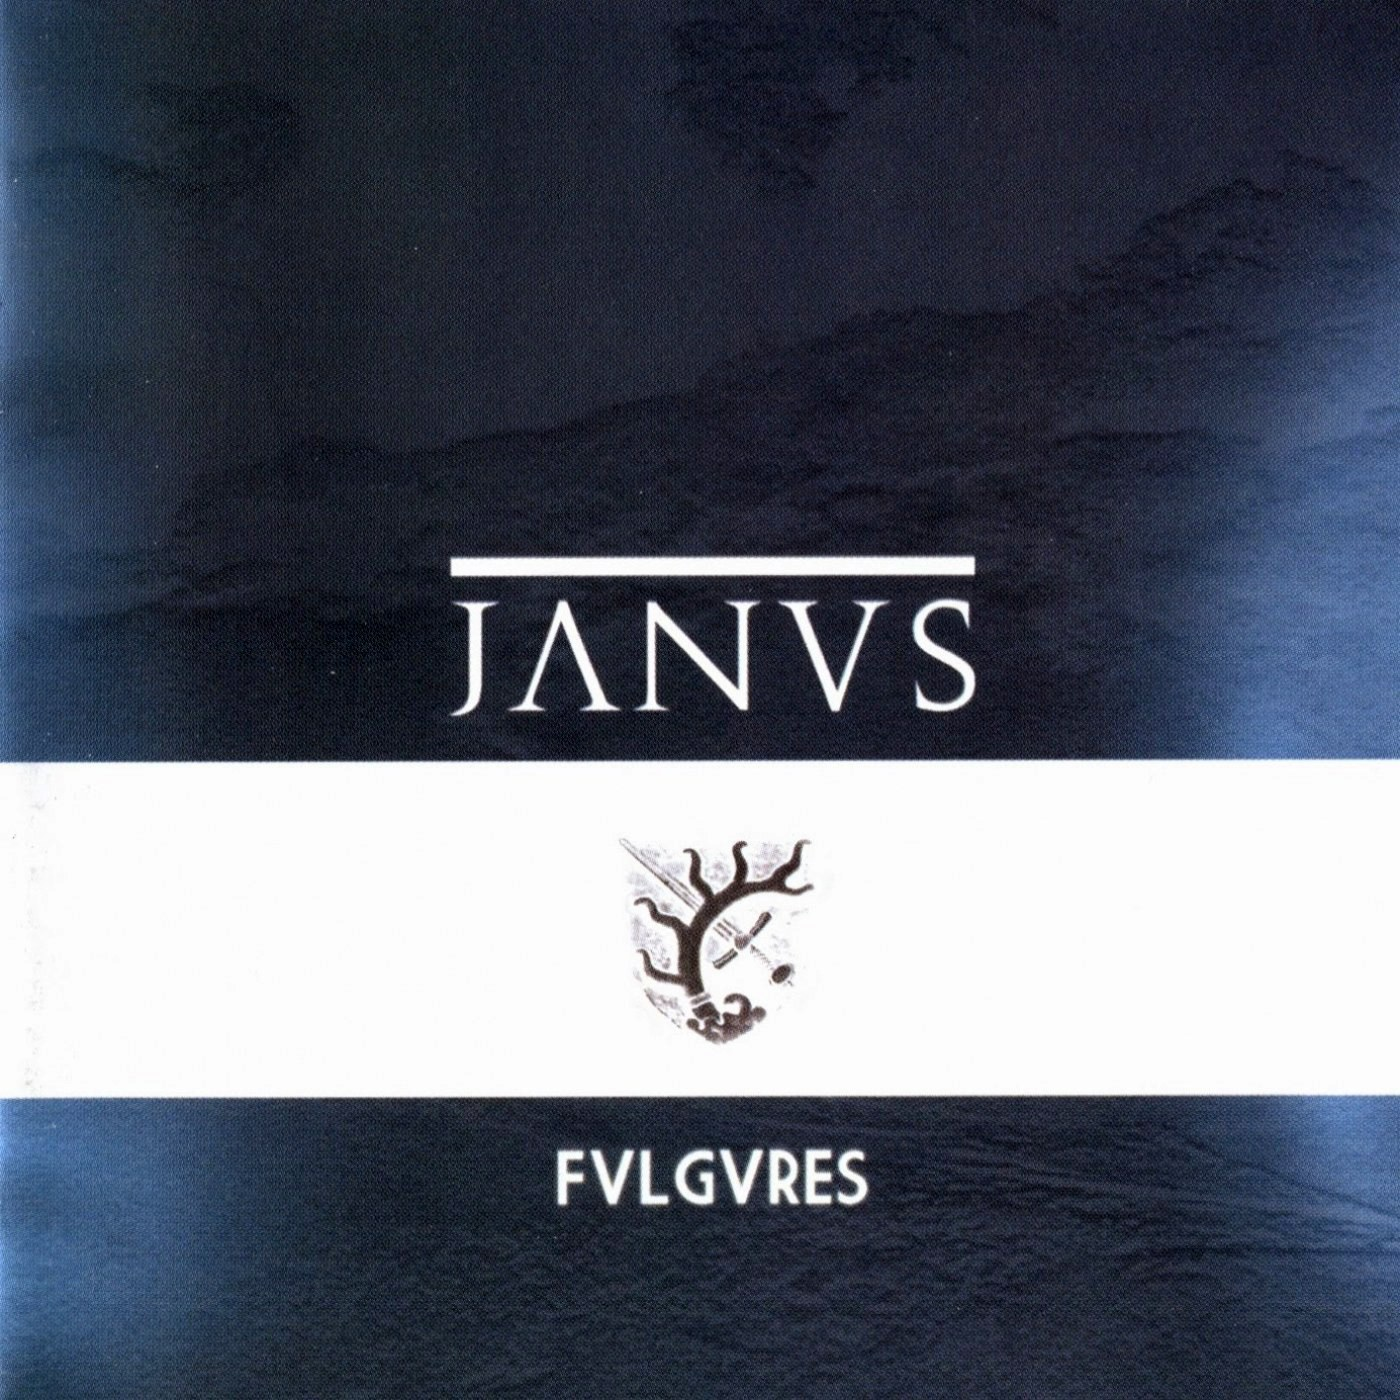 Review for Janvs - FVLGVRES